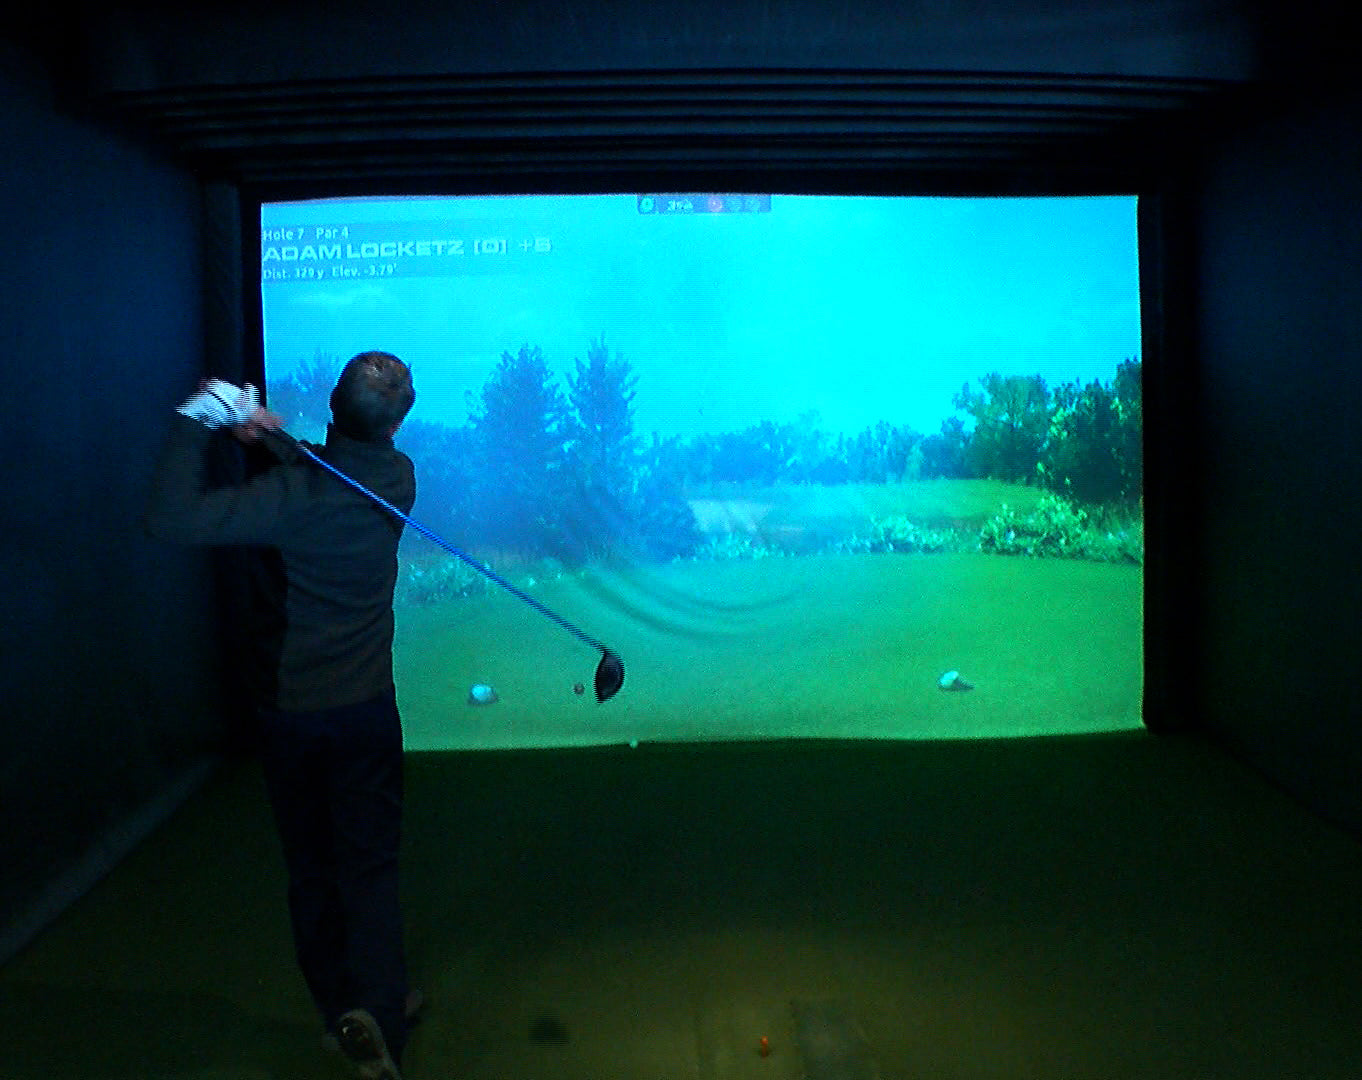 Golf Simulator Room - Driving Range